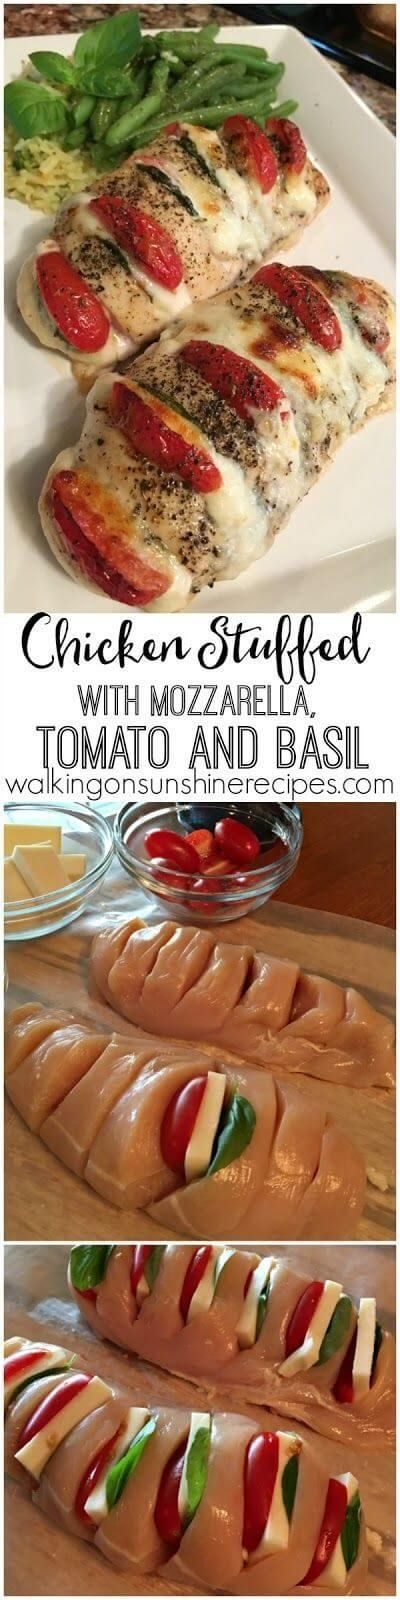 Chicken Stuffed with Mozzarella, Tomato and Basil Recipe